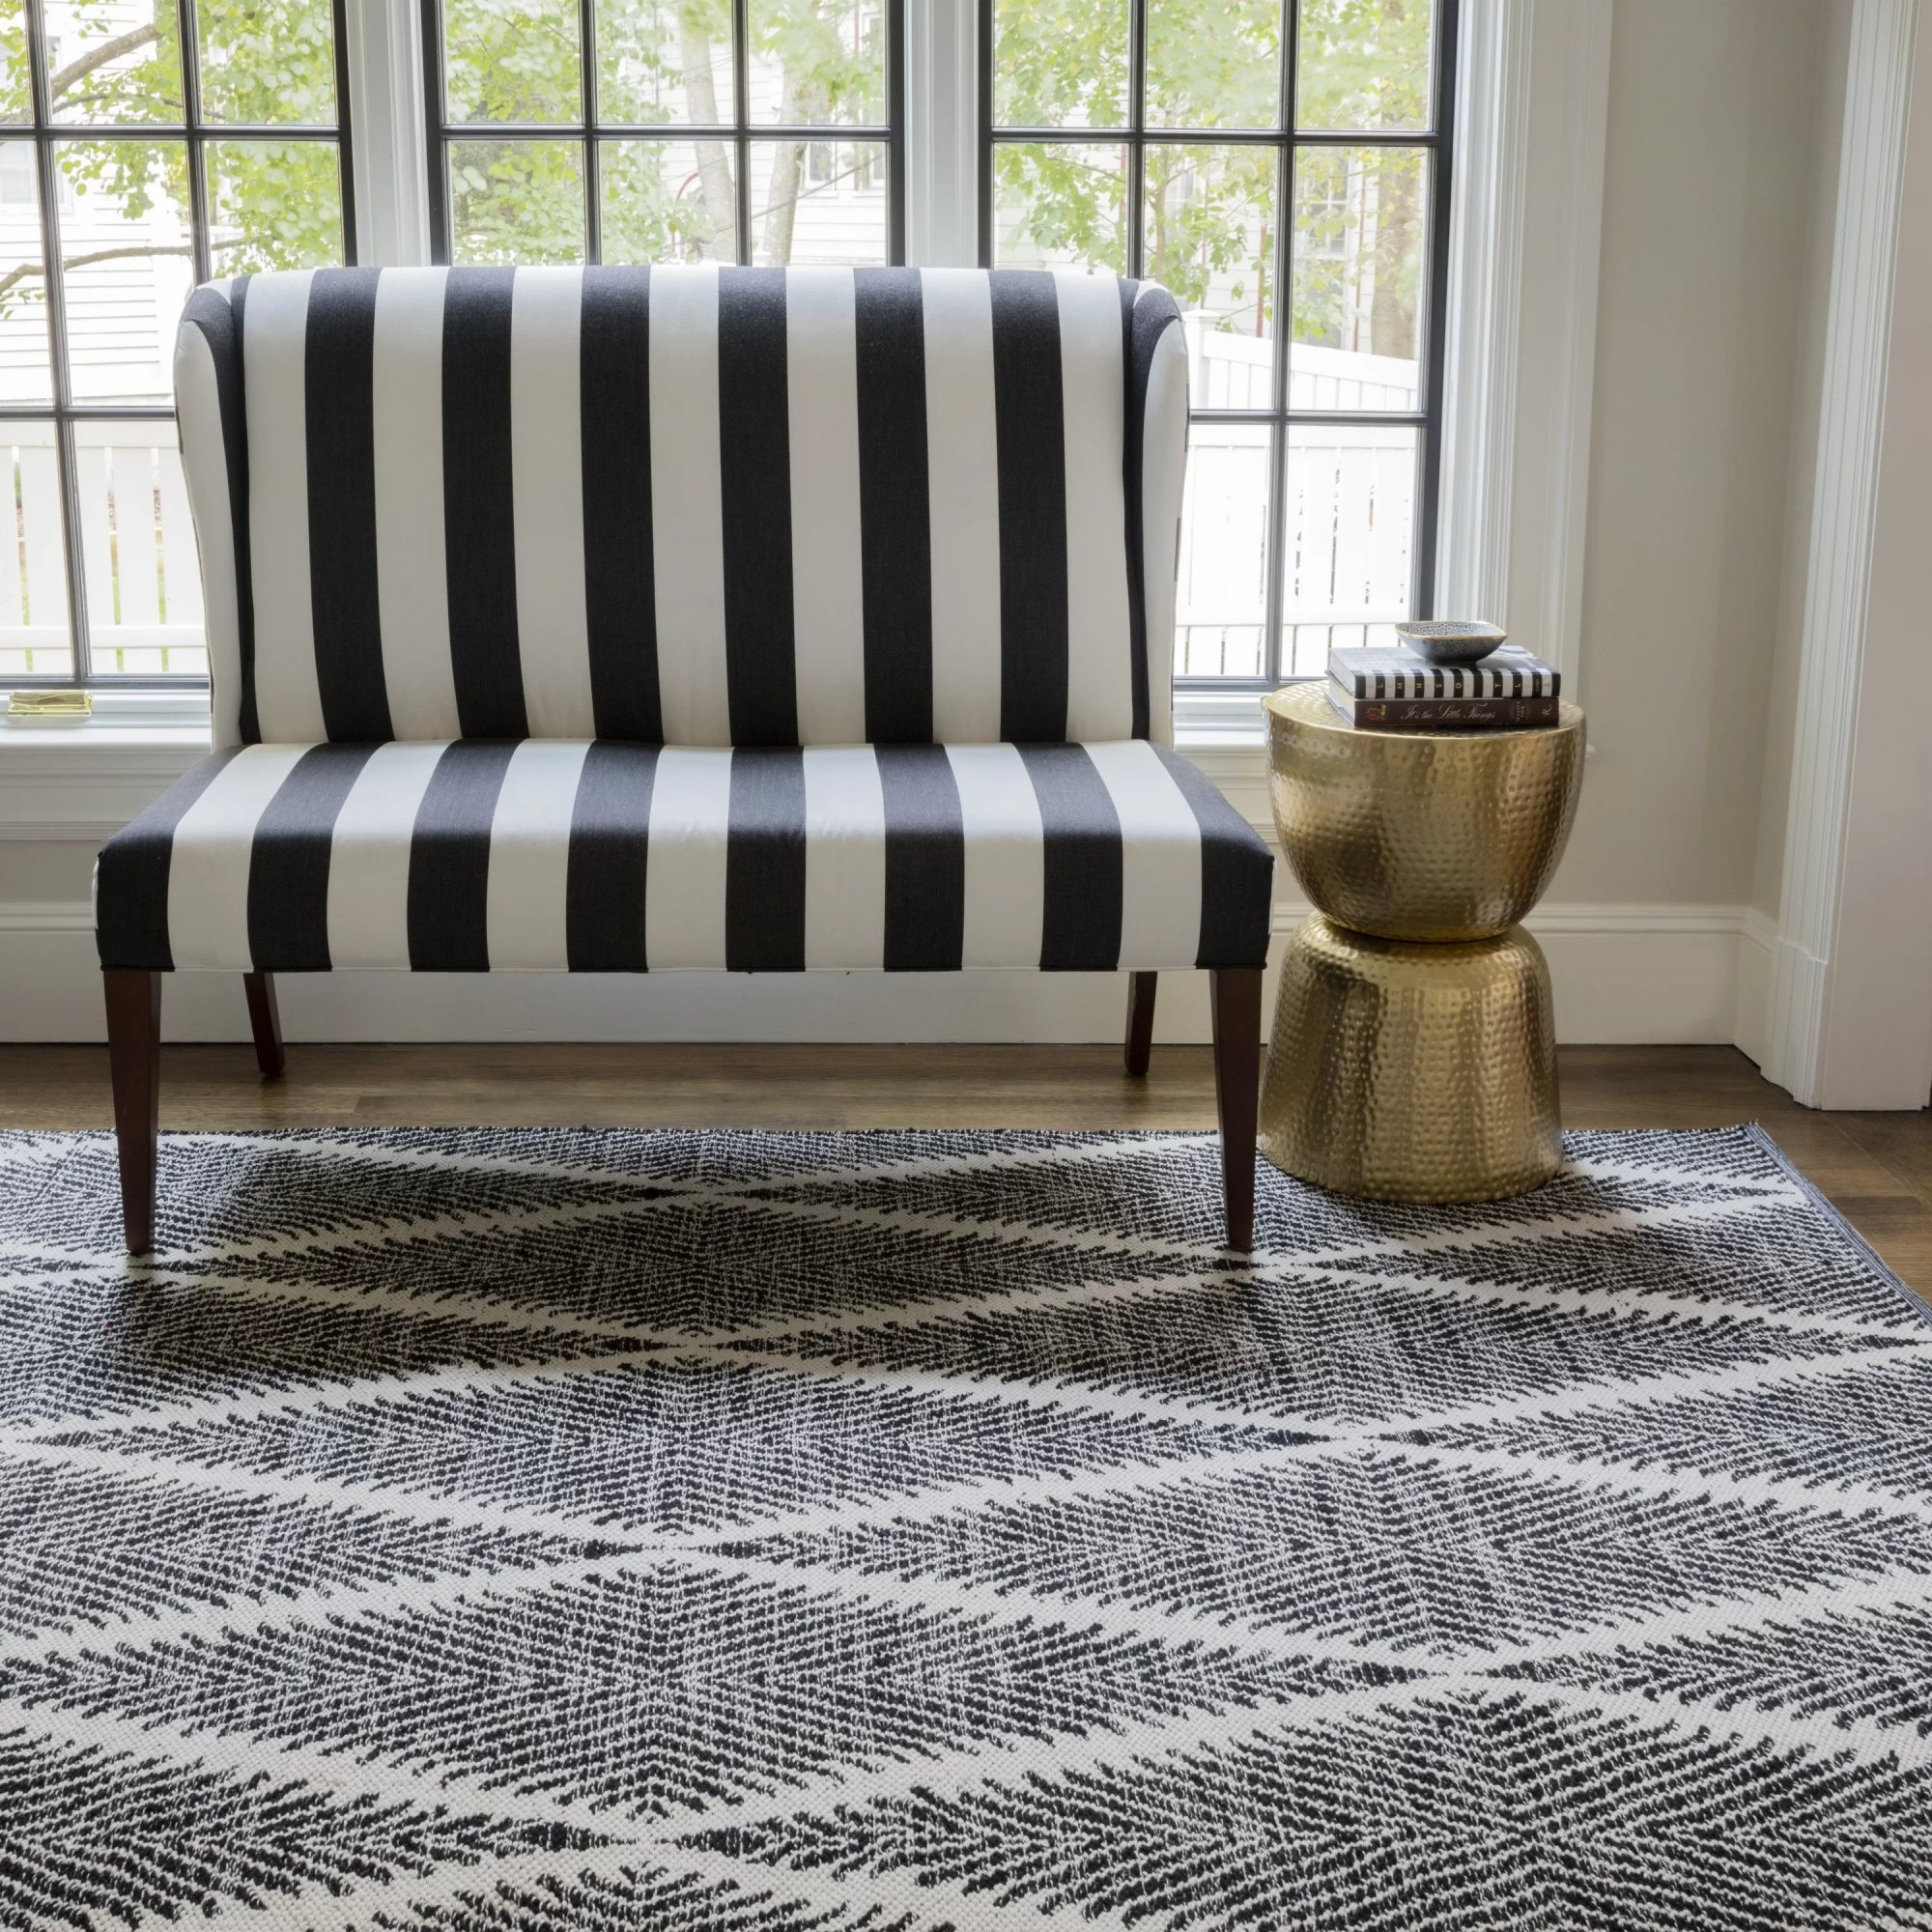 Erin Gates x Momeni River Geometric Indoor/Outdoor Rug in Black and White